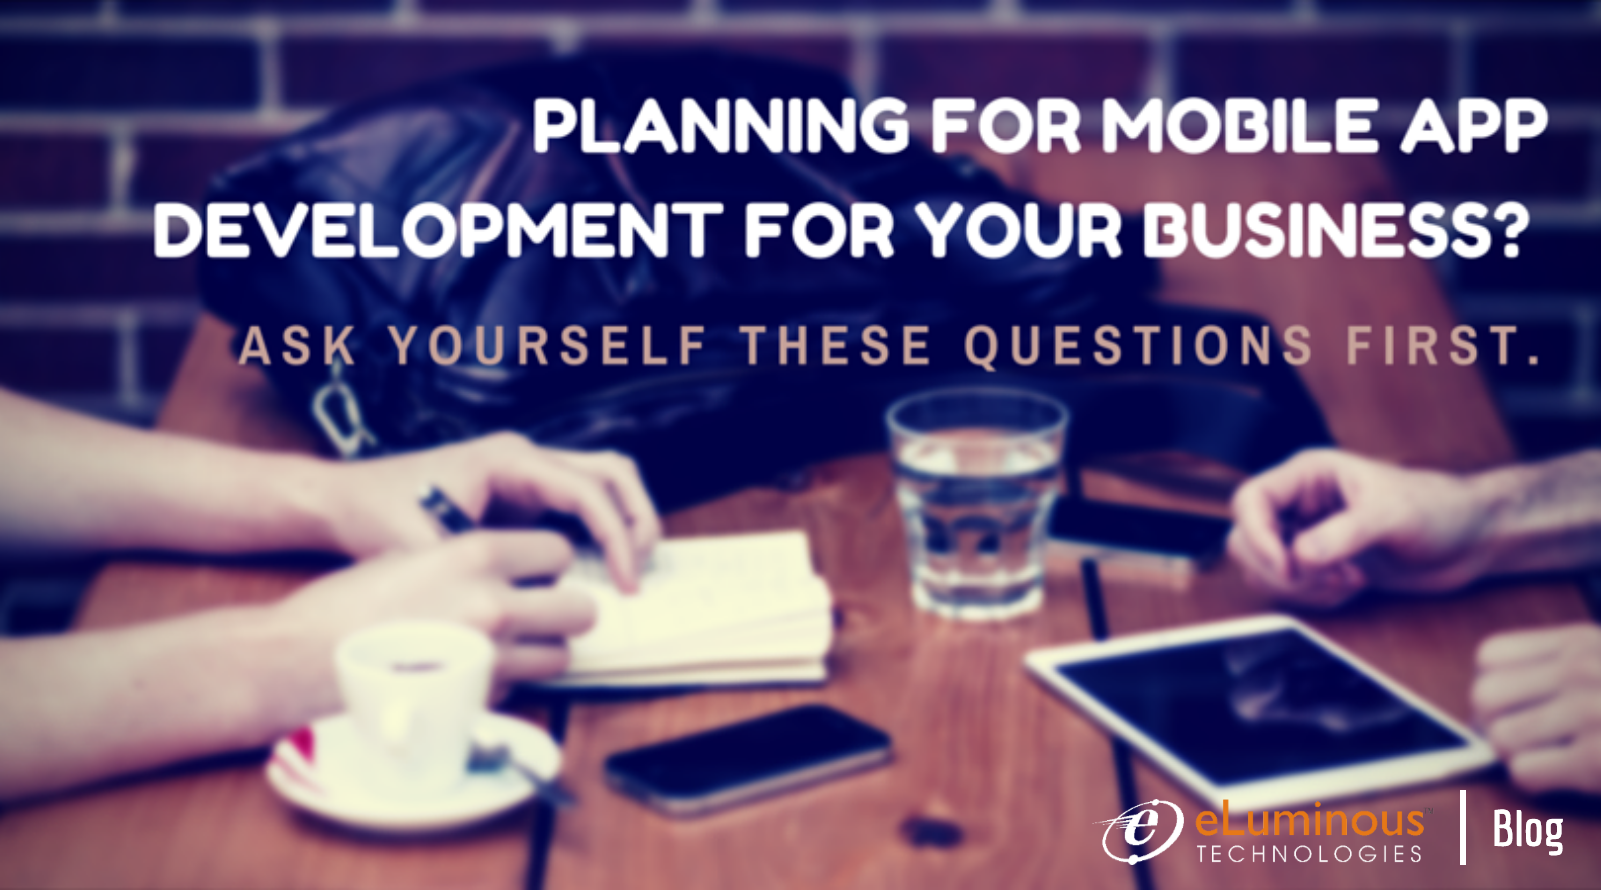 Planning for Mobile Apps development for your Business? Ask yourself these questions before you go ahead.